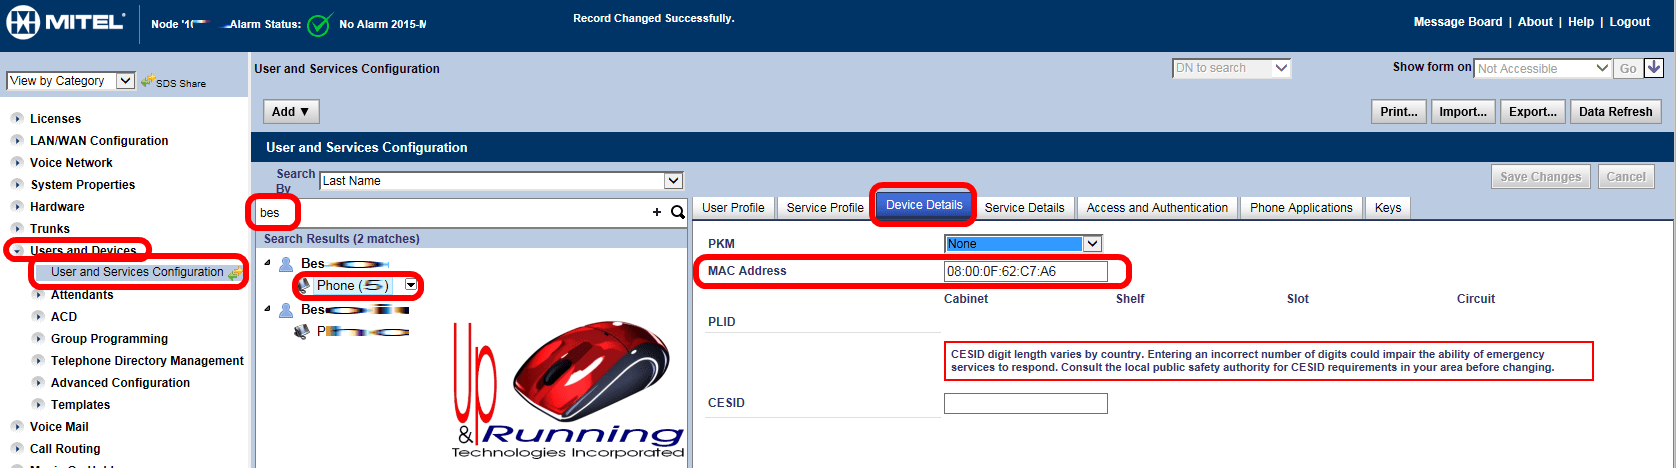 how to find ip address of cell phone number